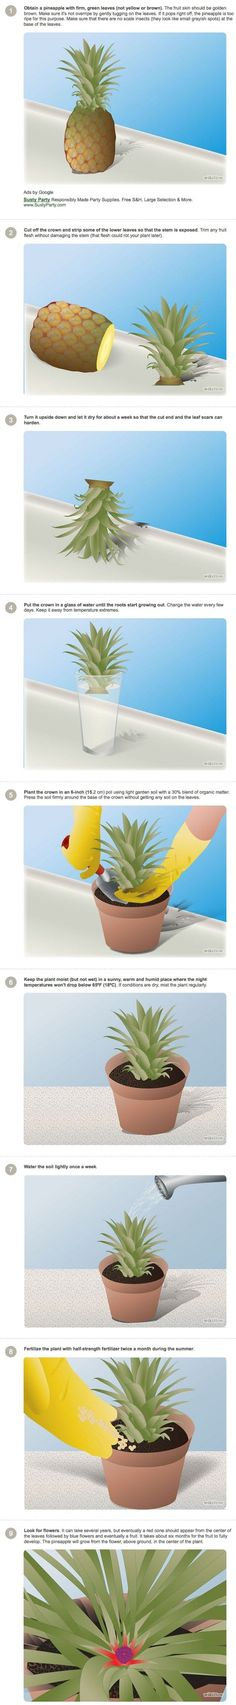 how to grow a pineapple